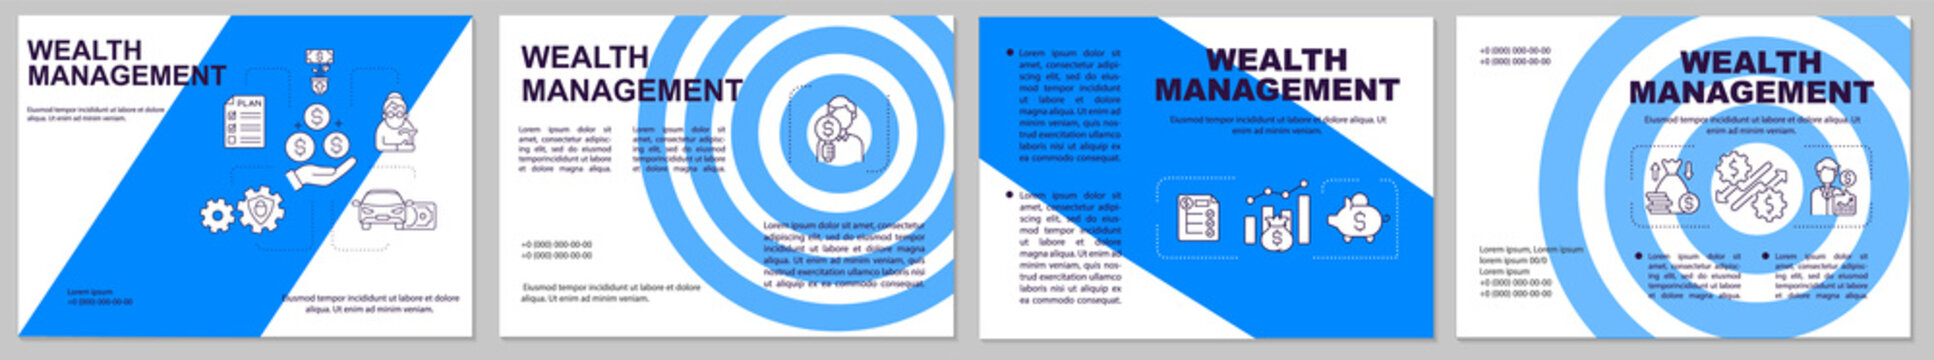 Wealth management brochure template. Controlling budget. Flyer, booklet, leaflet print, cover design with linear icons. Vector layouts for presentation, annual reports, advertisement pages